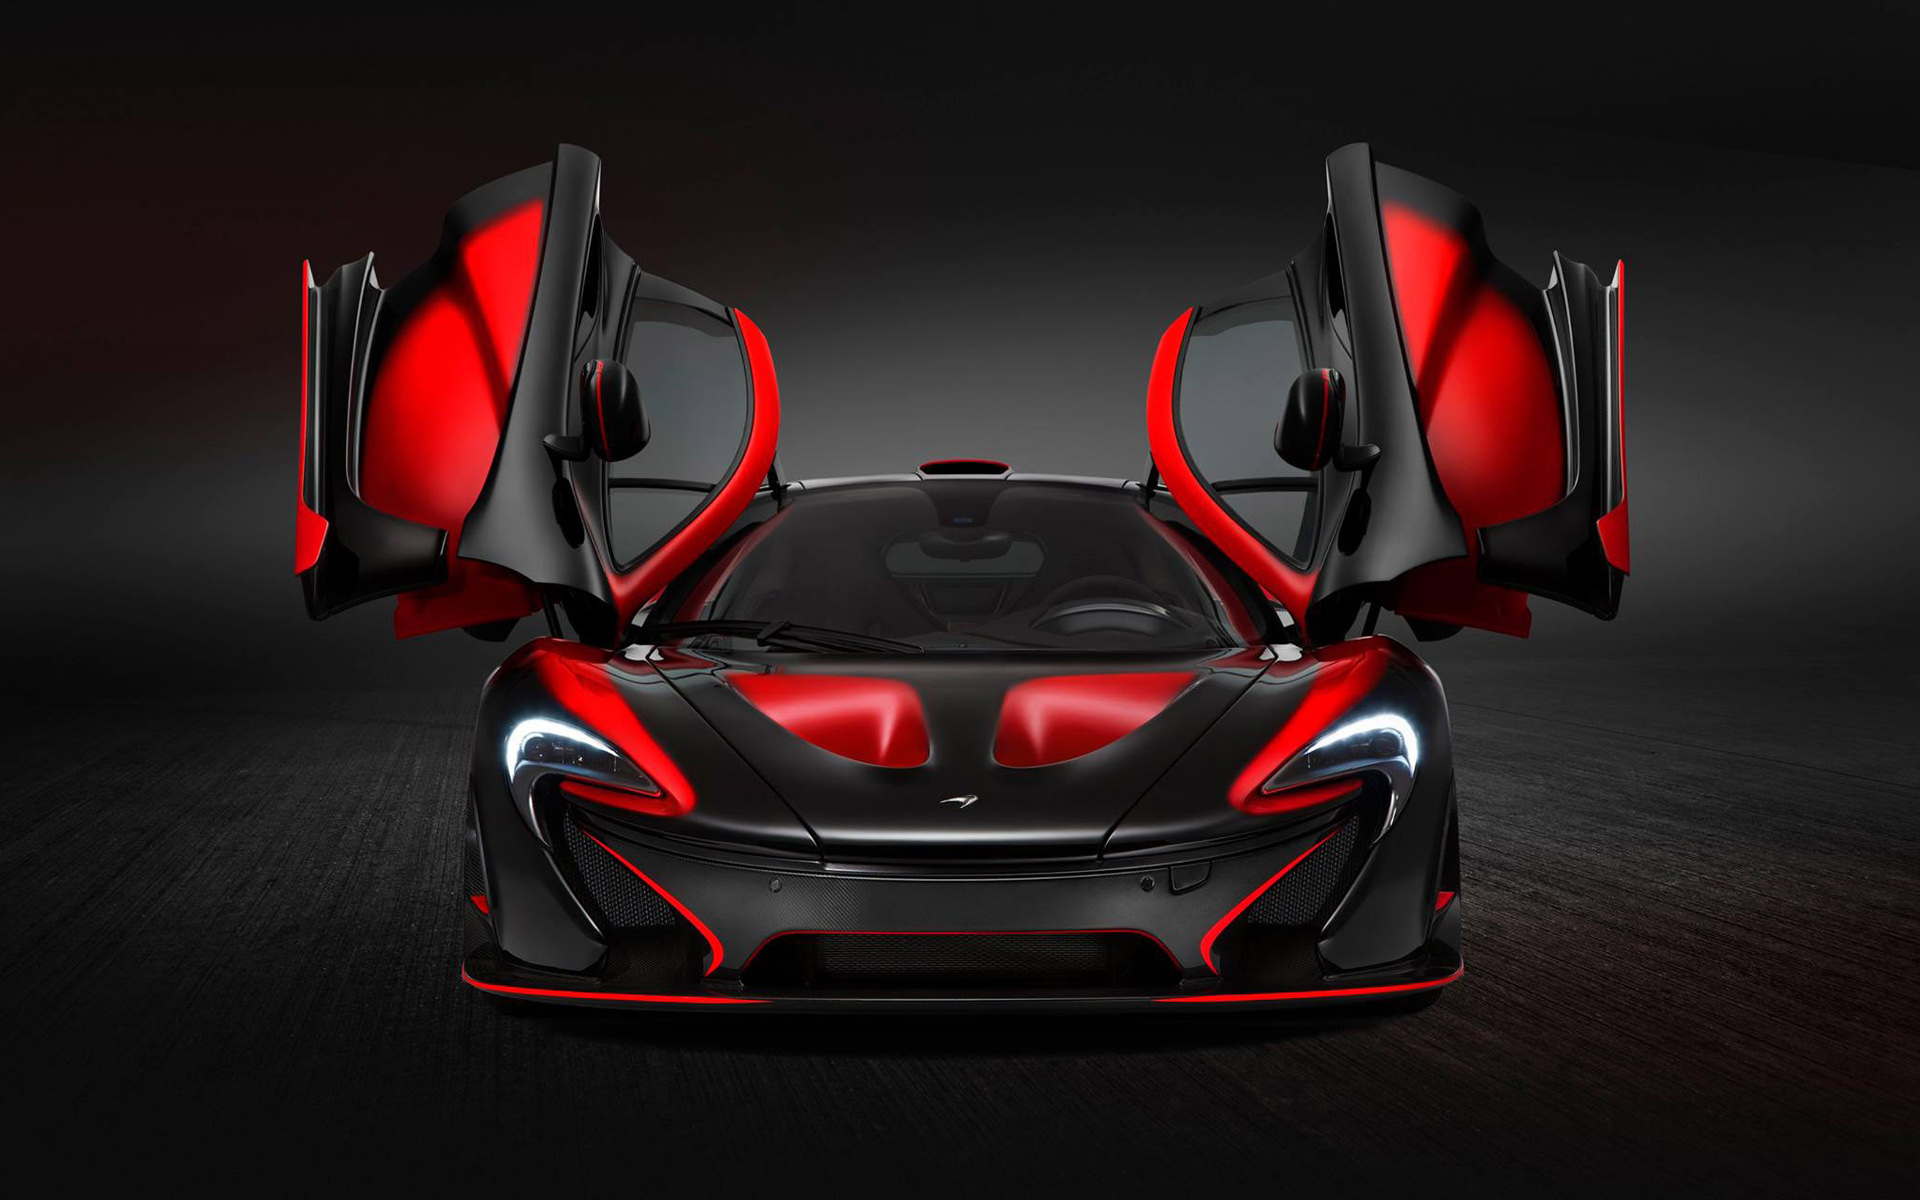 Its mirror coating fully reflects everything that is happening around, and an evil and powerful look inspires the views of others. 2015 Mclaren P1 Mclaren Special Operationsrelated Car Wallpapers Wallpaper Cars Wallpaper Better